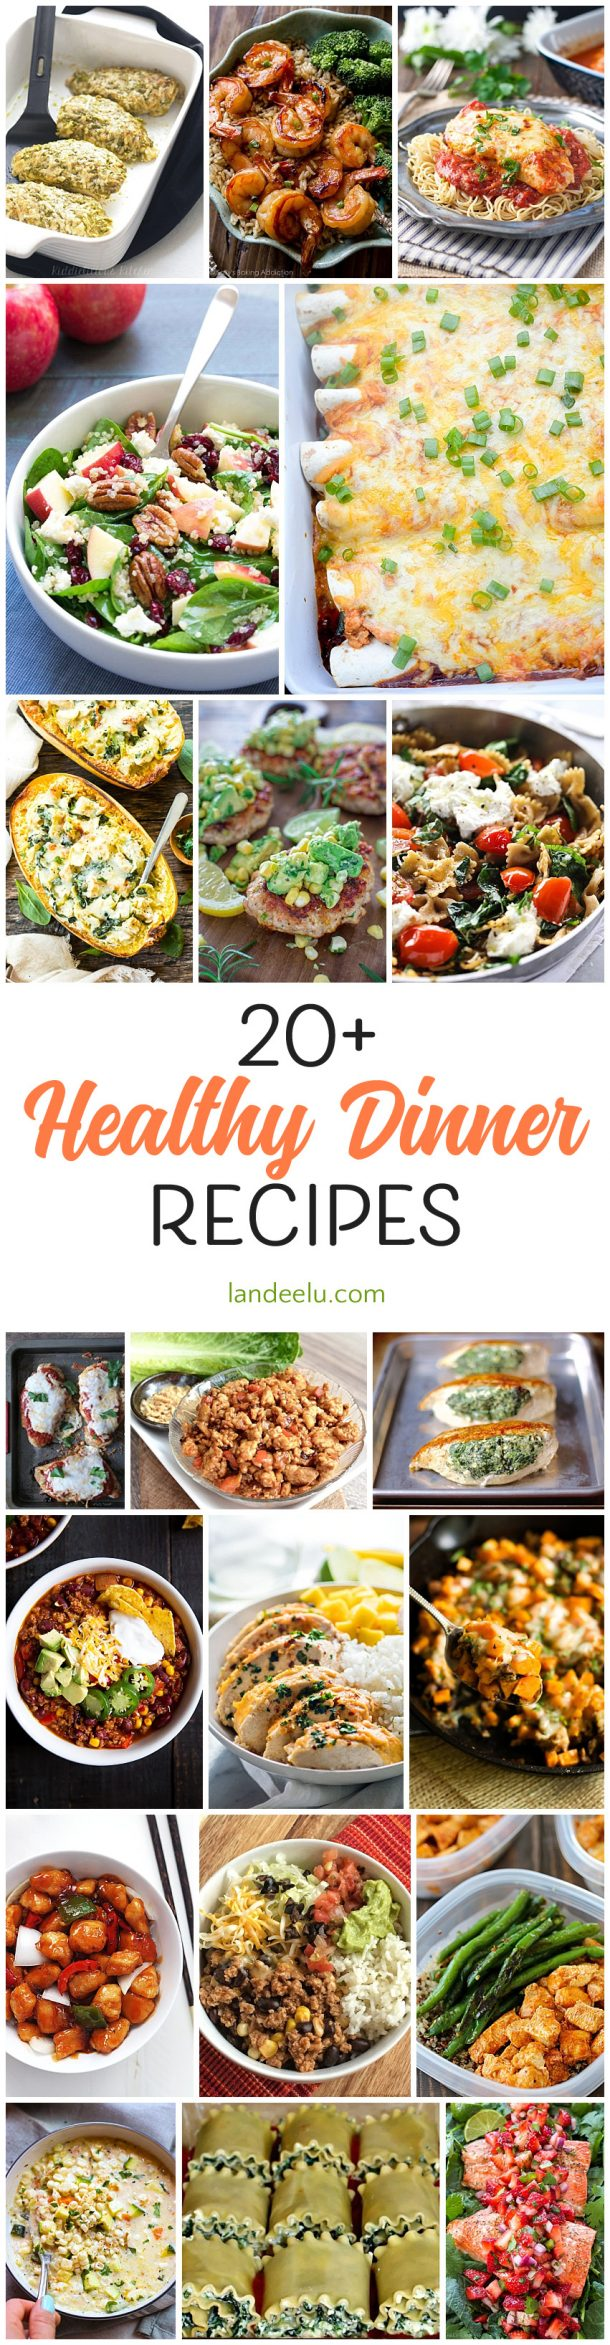 Over 20 healthy dinner recipes to try ASAP! Some family favorites lightened up and some packed with nutrients... all delicious!